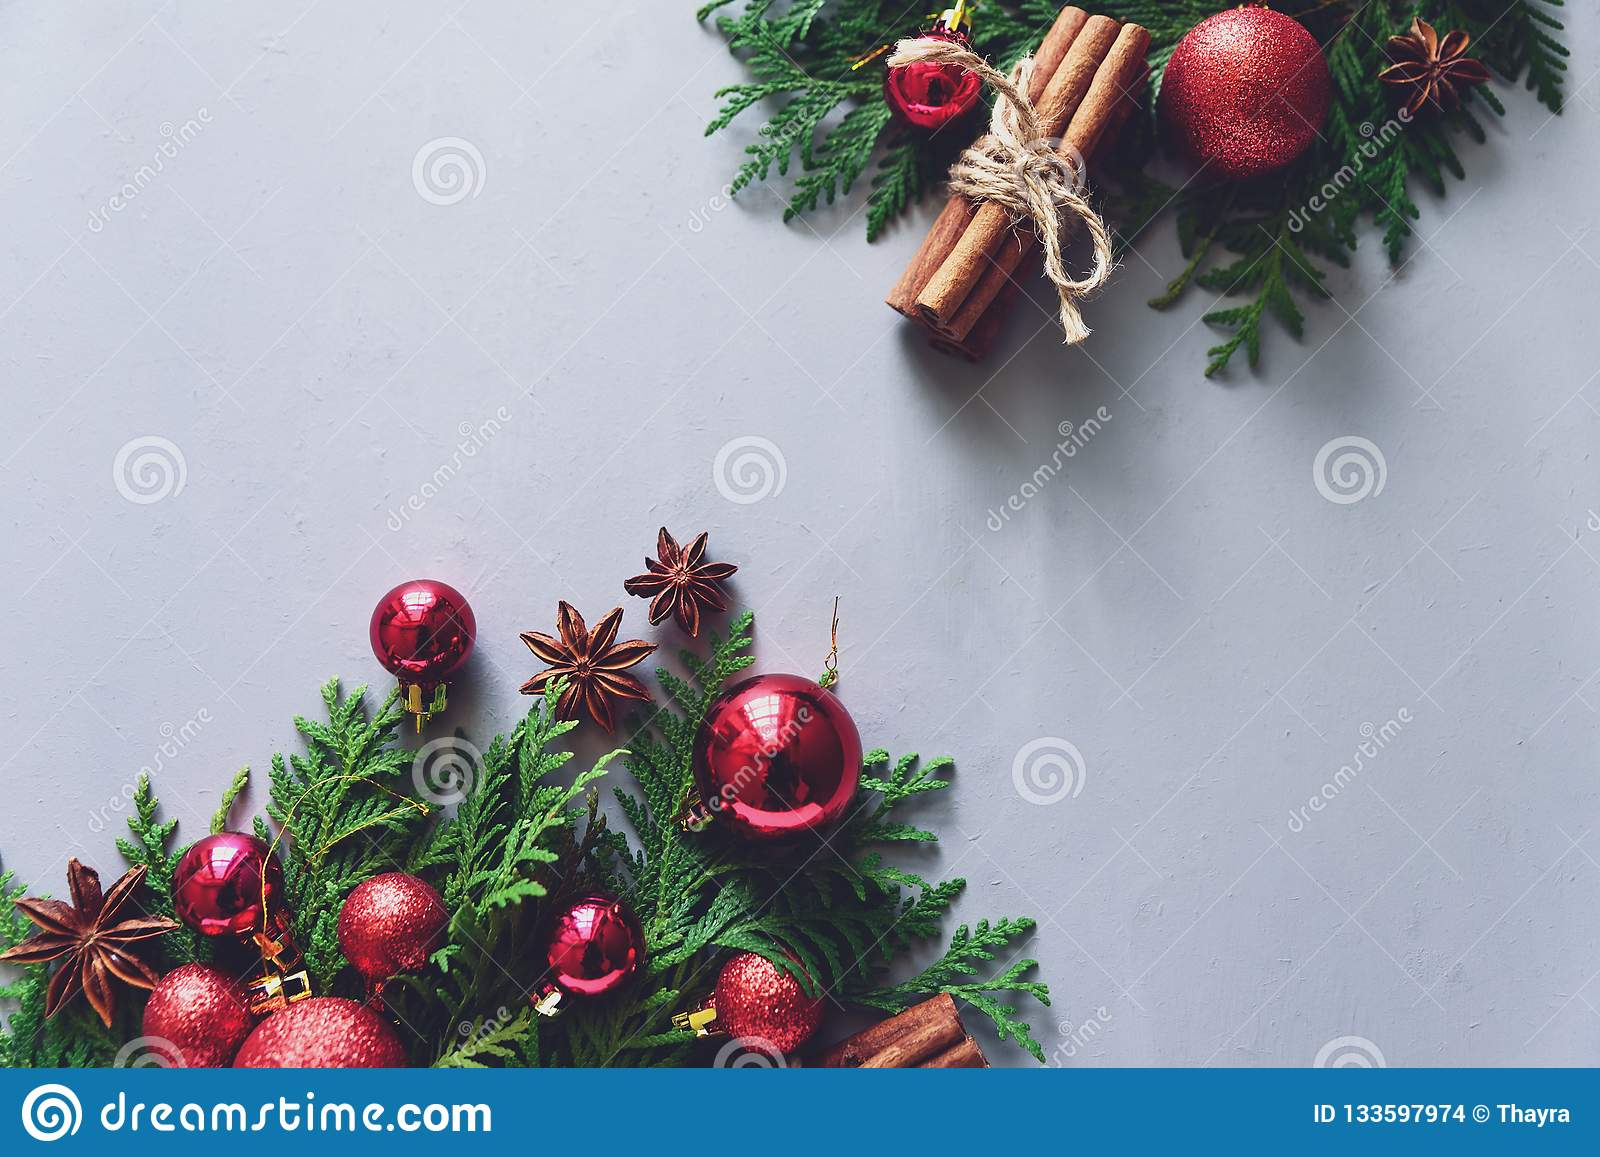 Christmas composition. Christmas fir tree branches, balls, cinnamon sticks and anise stars on gray wooden background. Flat lay. To